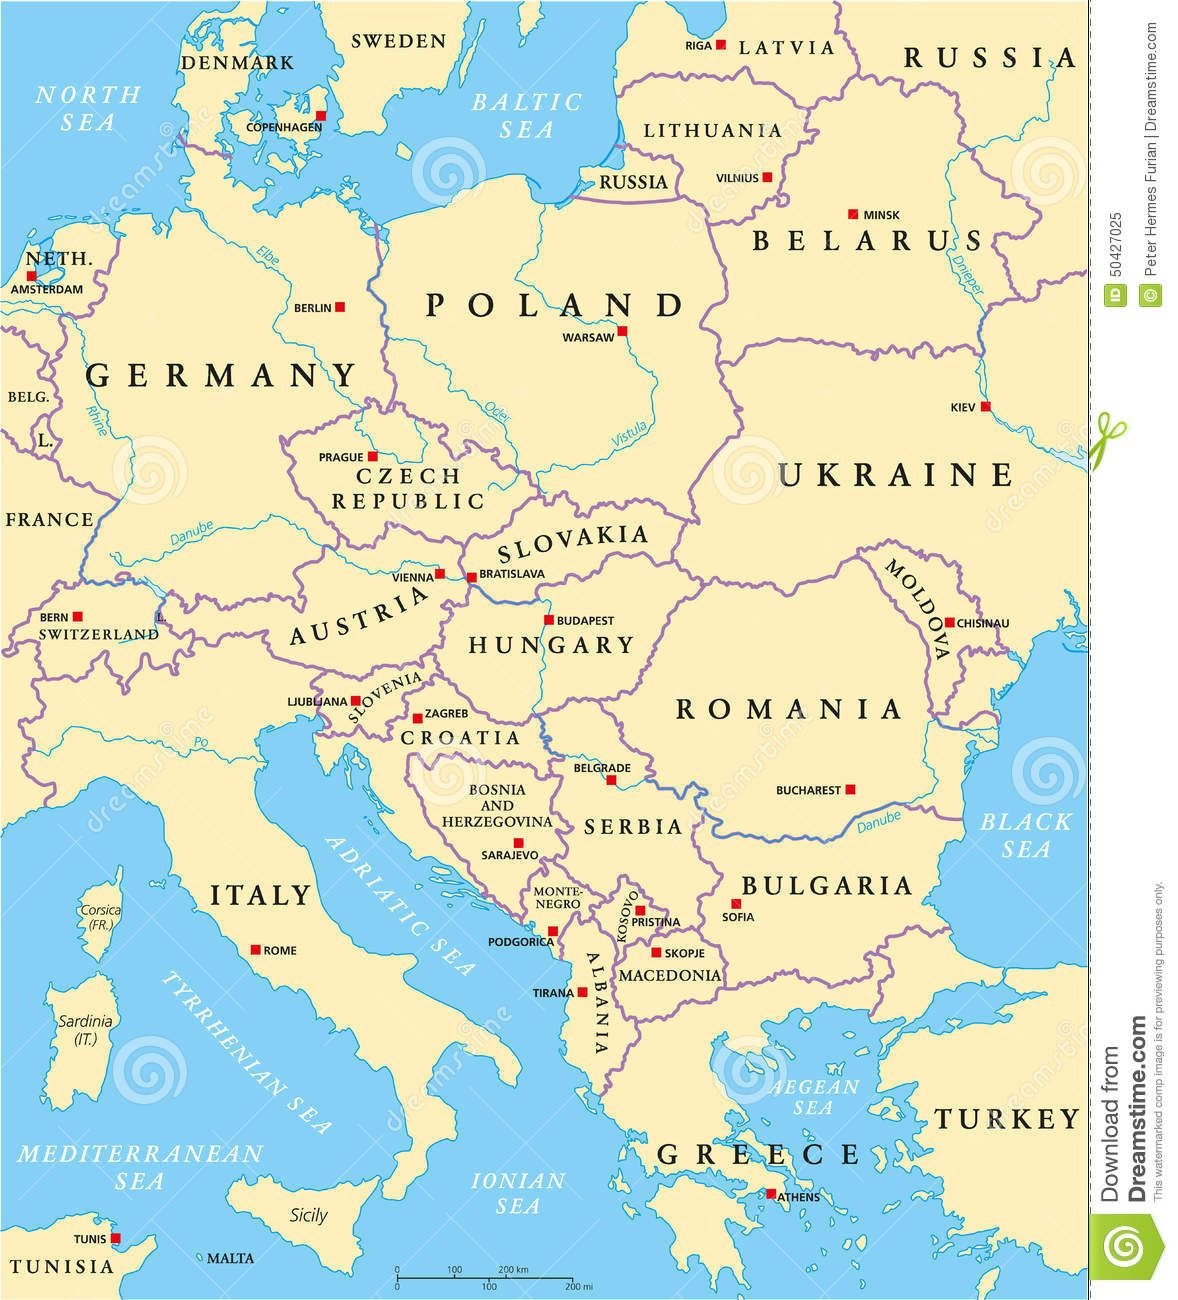 central europe political map download from over 66 million hq free today image 50427025